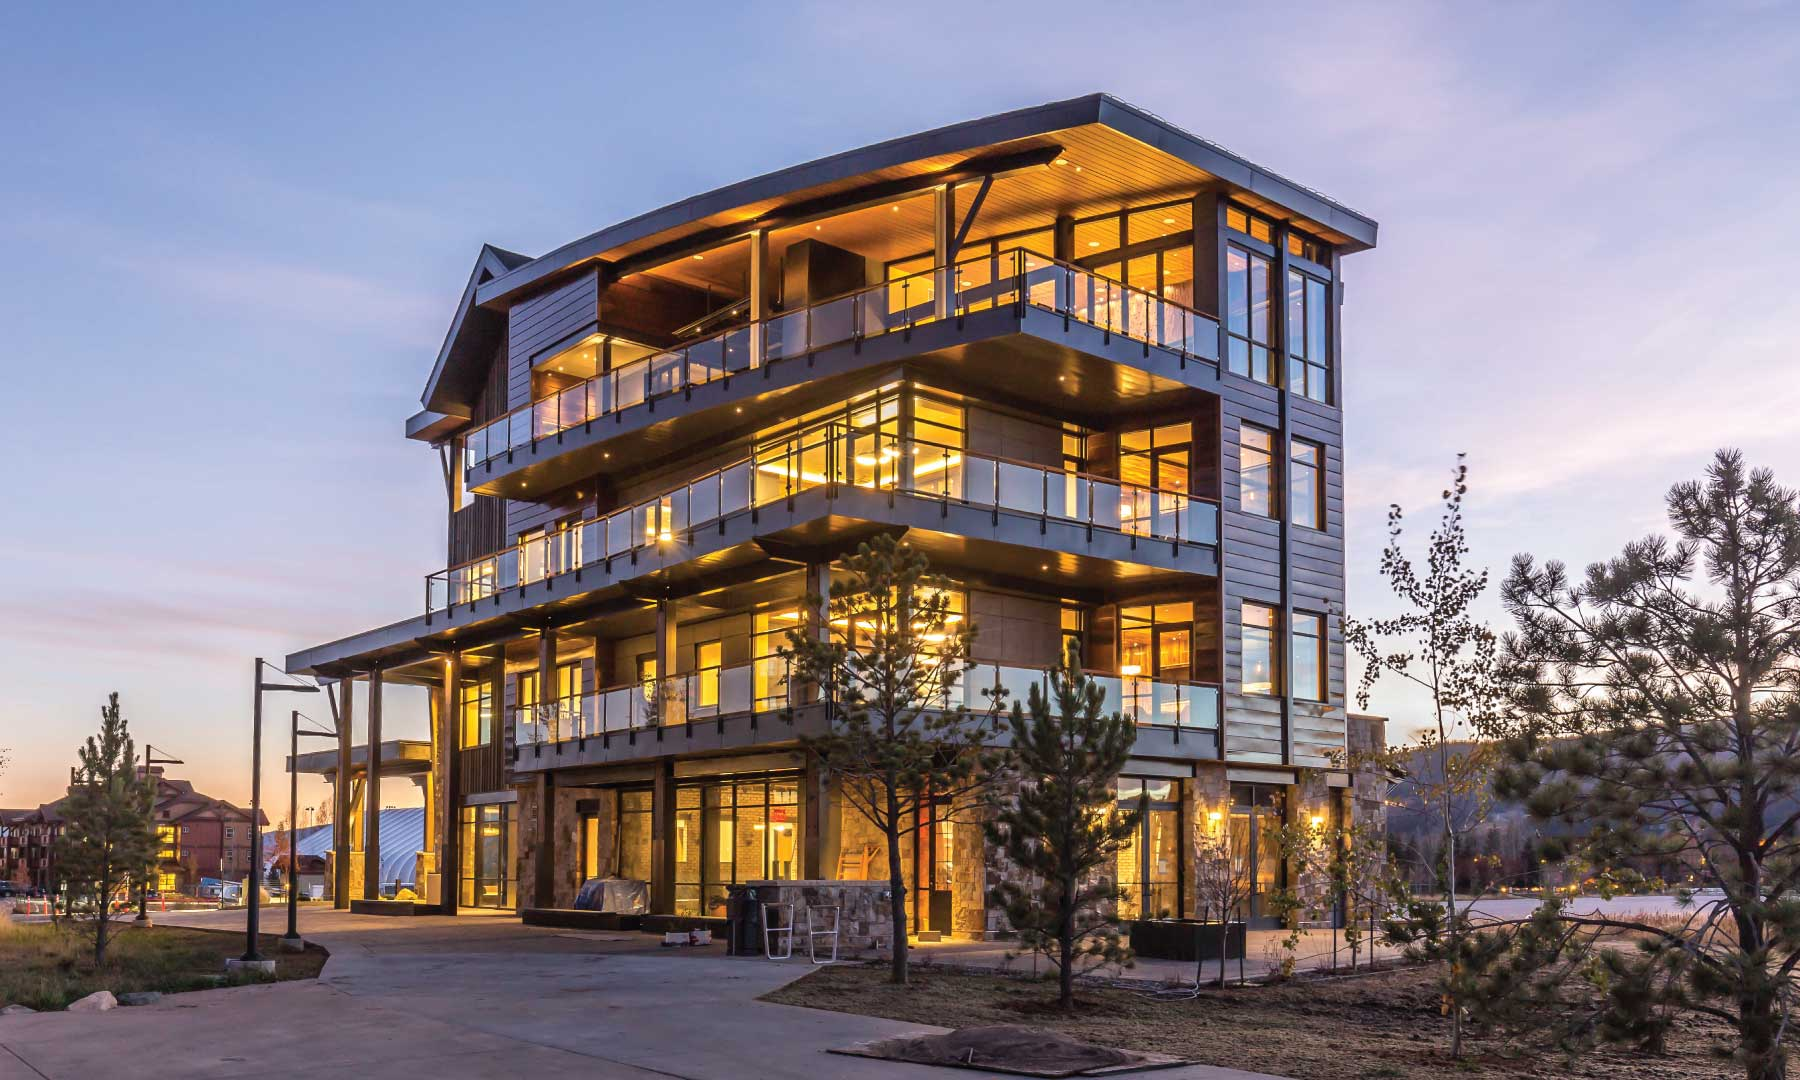 central electric steamboat springs yampa valley colorado electrical contractor install DEER PARK 8 - Photography